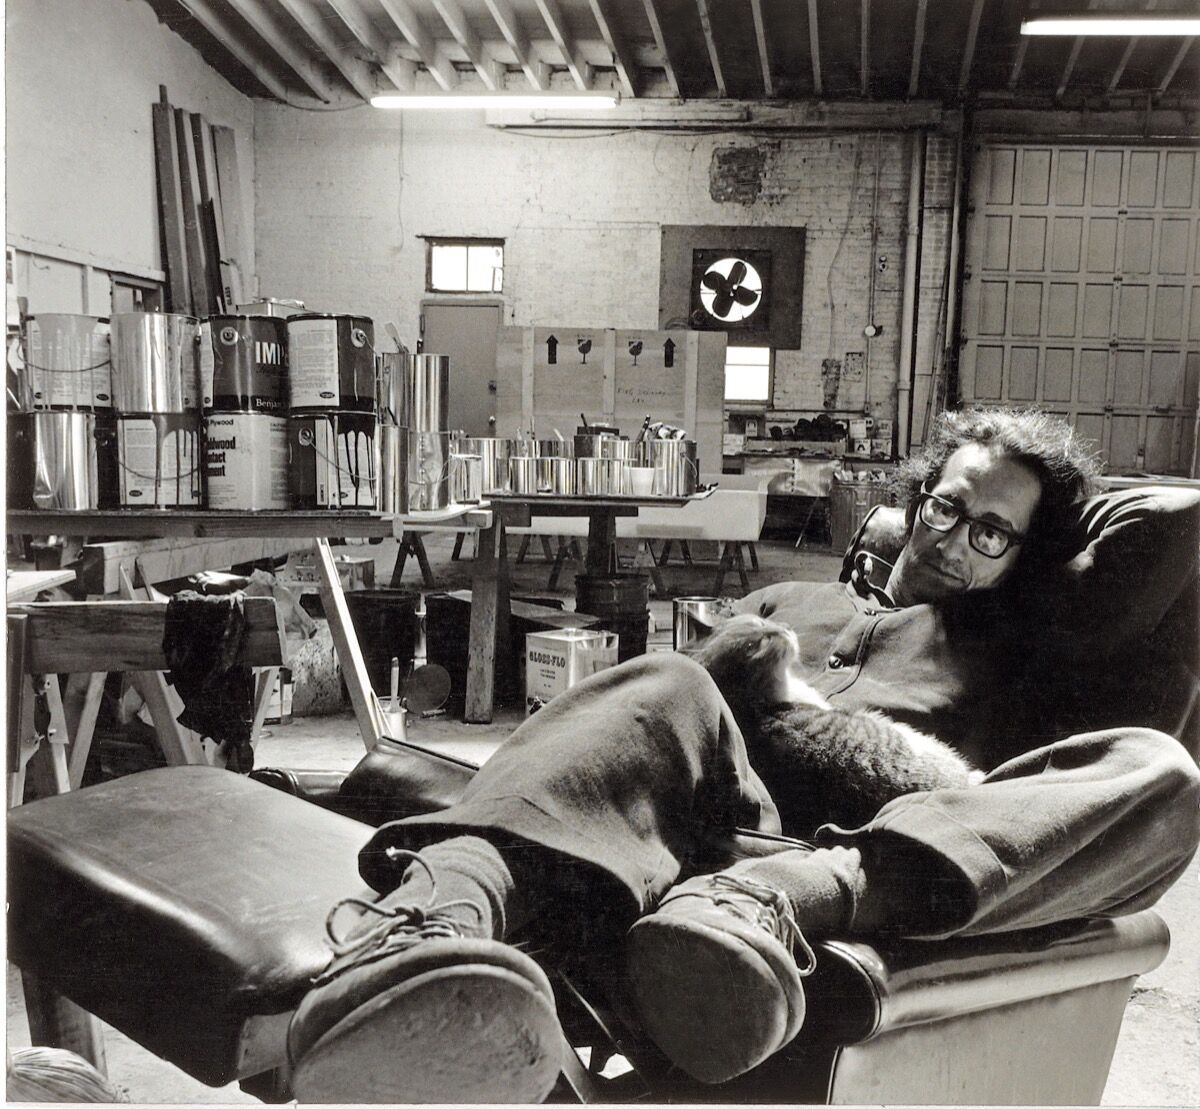 Frank Stella with Marisol. Image from Artful Cats  by Mary Savig, published by the Smithsonian's Archives of American Art, 2019. Courtesy of the publishers.